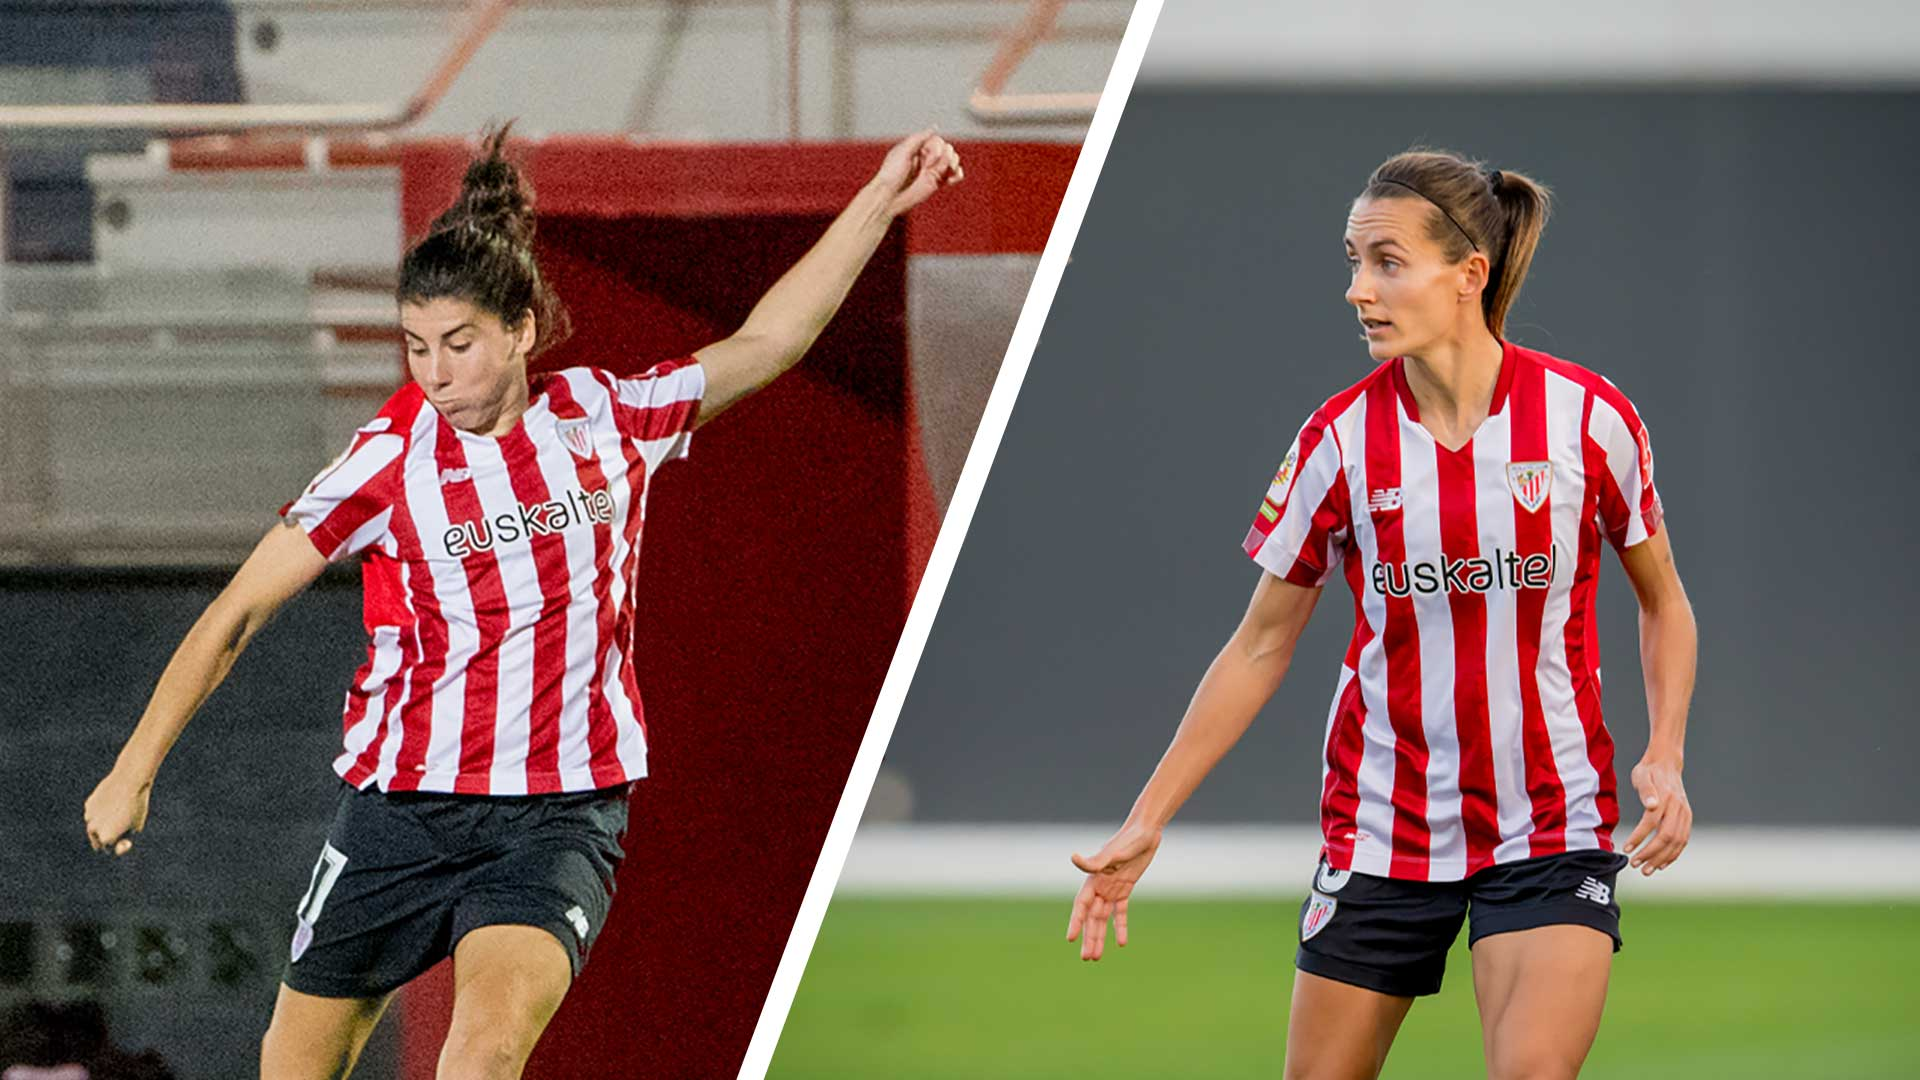 Lucía García and Moraza selected for the Spain squad